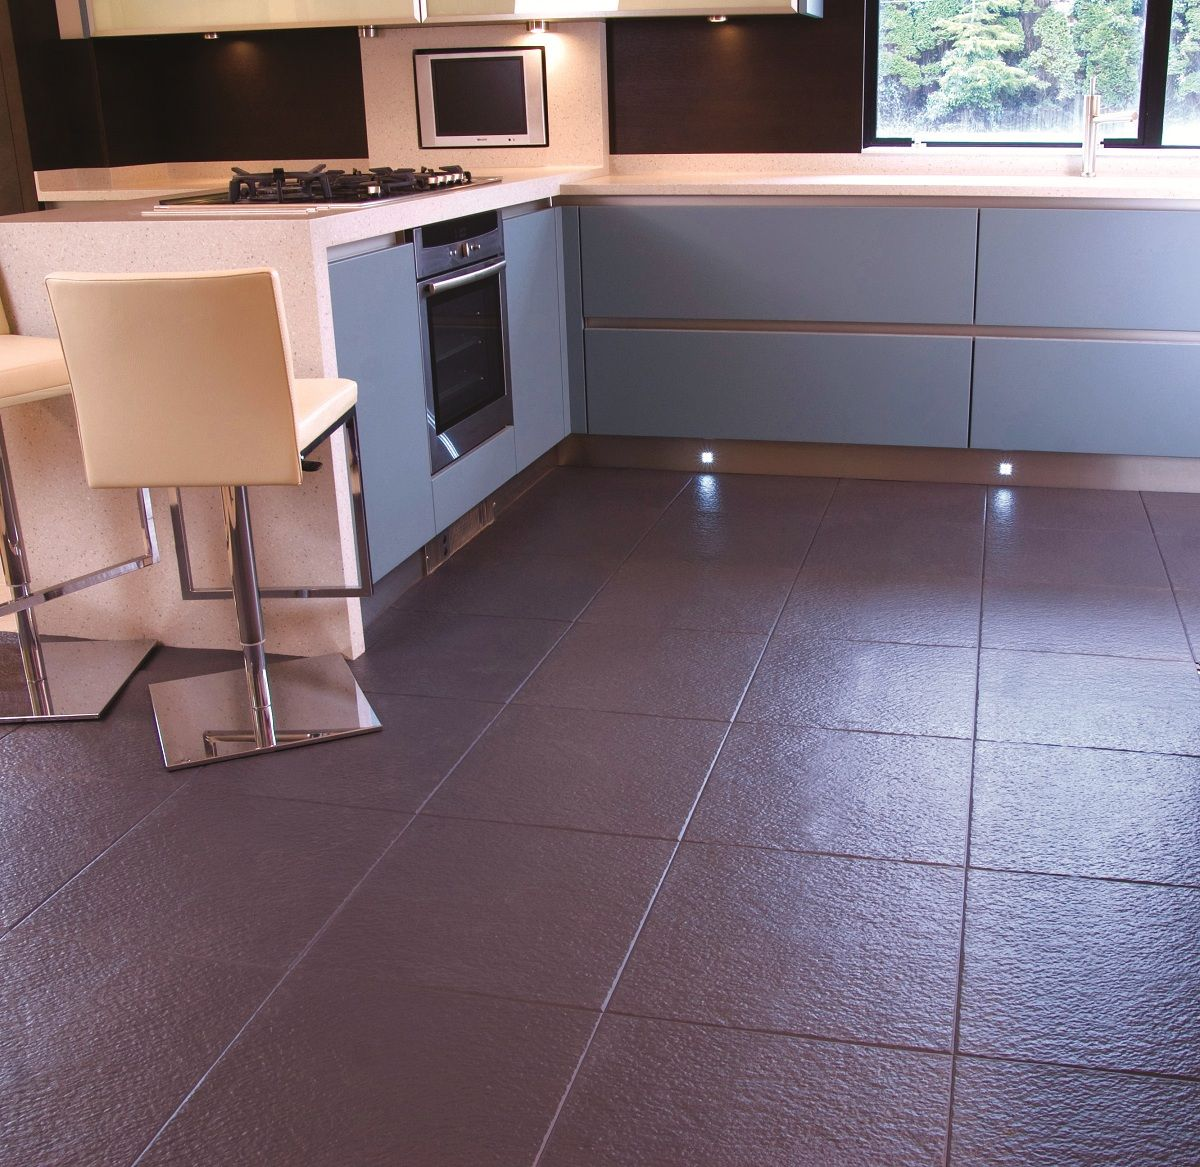 Residential rubber floor tile google search house pinterest residential rubber floor tile google search dailygadgetfo Gallery